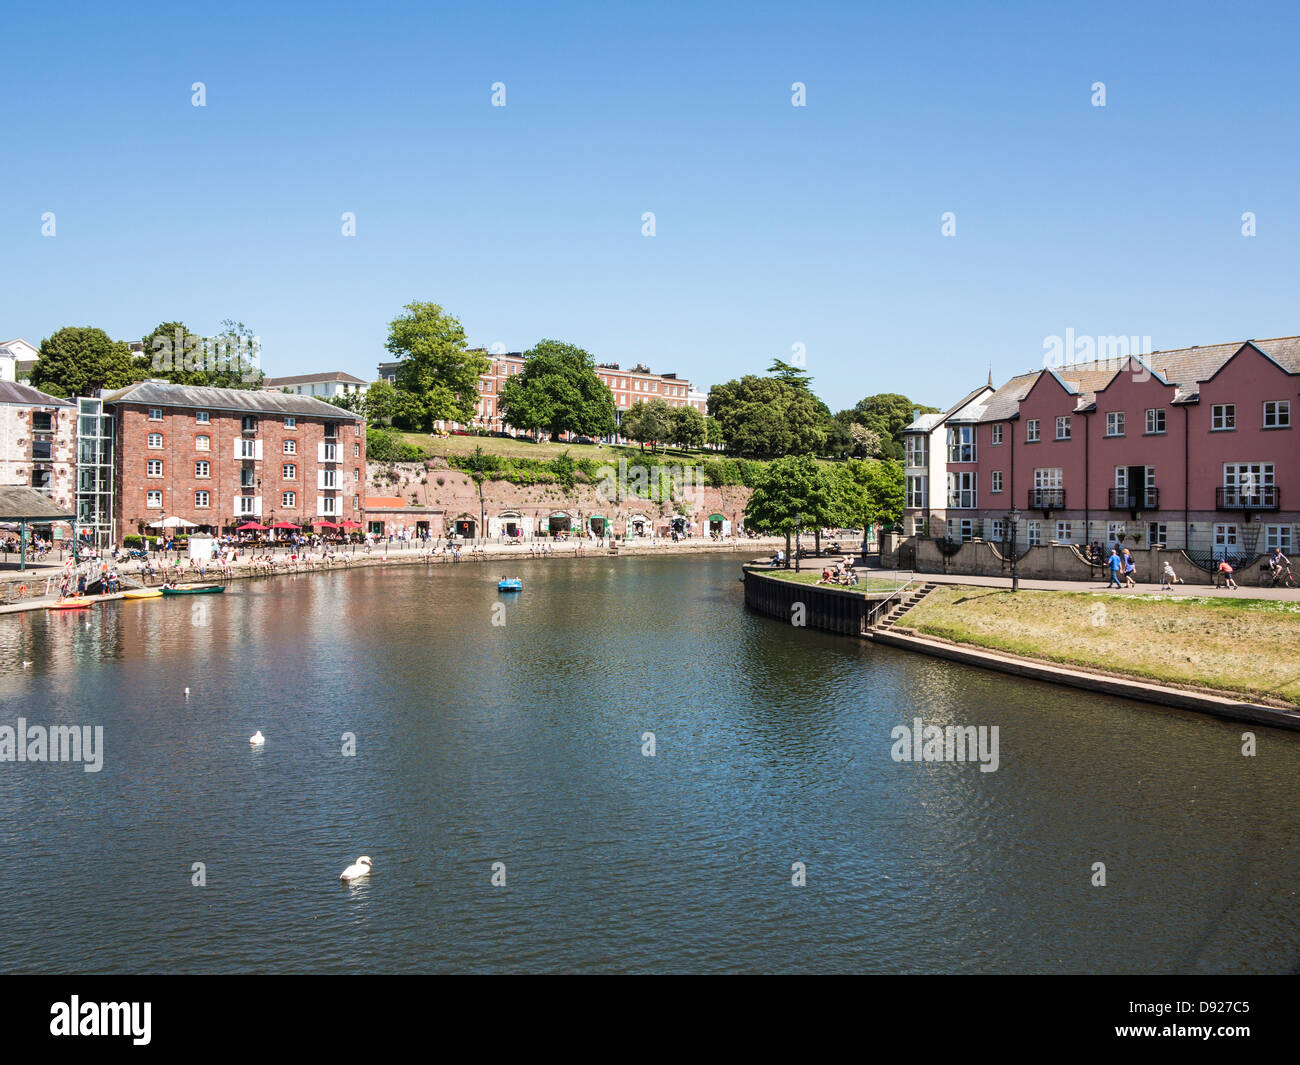 Summer on Exeter Quay beside the river Exe, Exeter, Devon, England - Stock Image